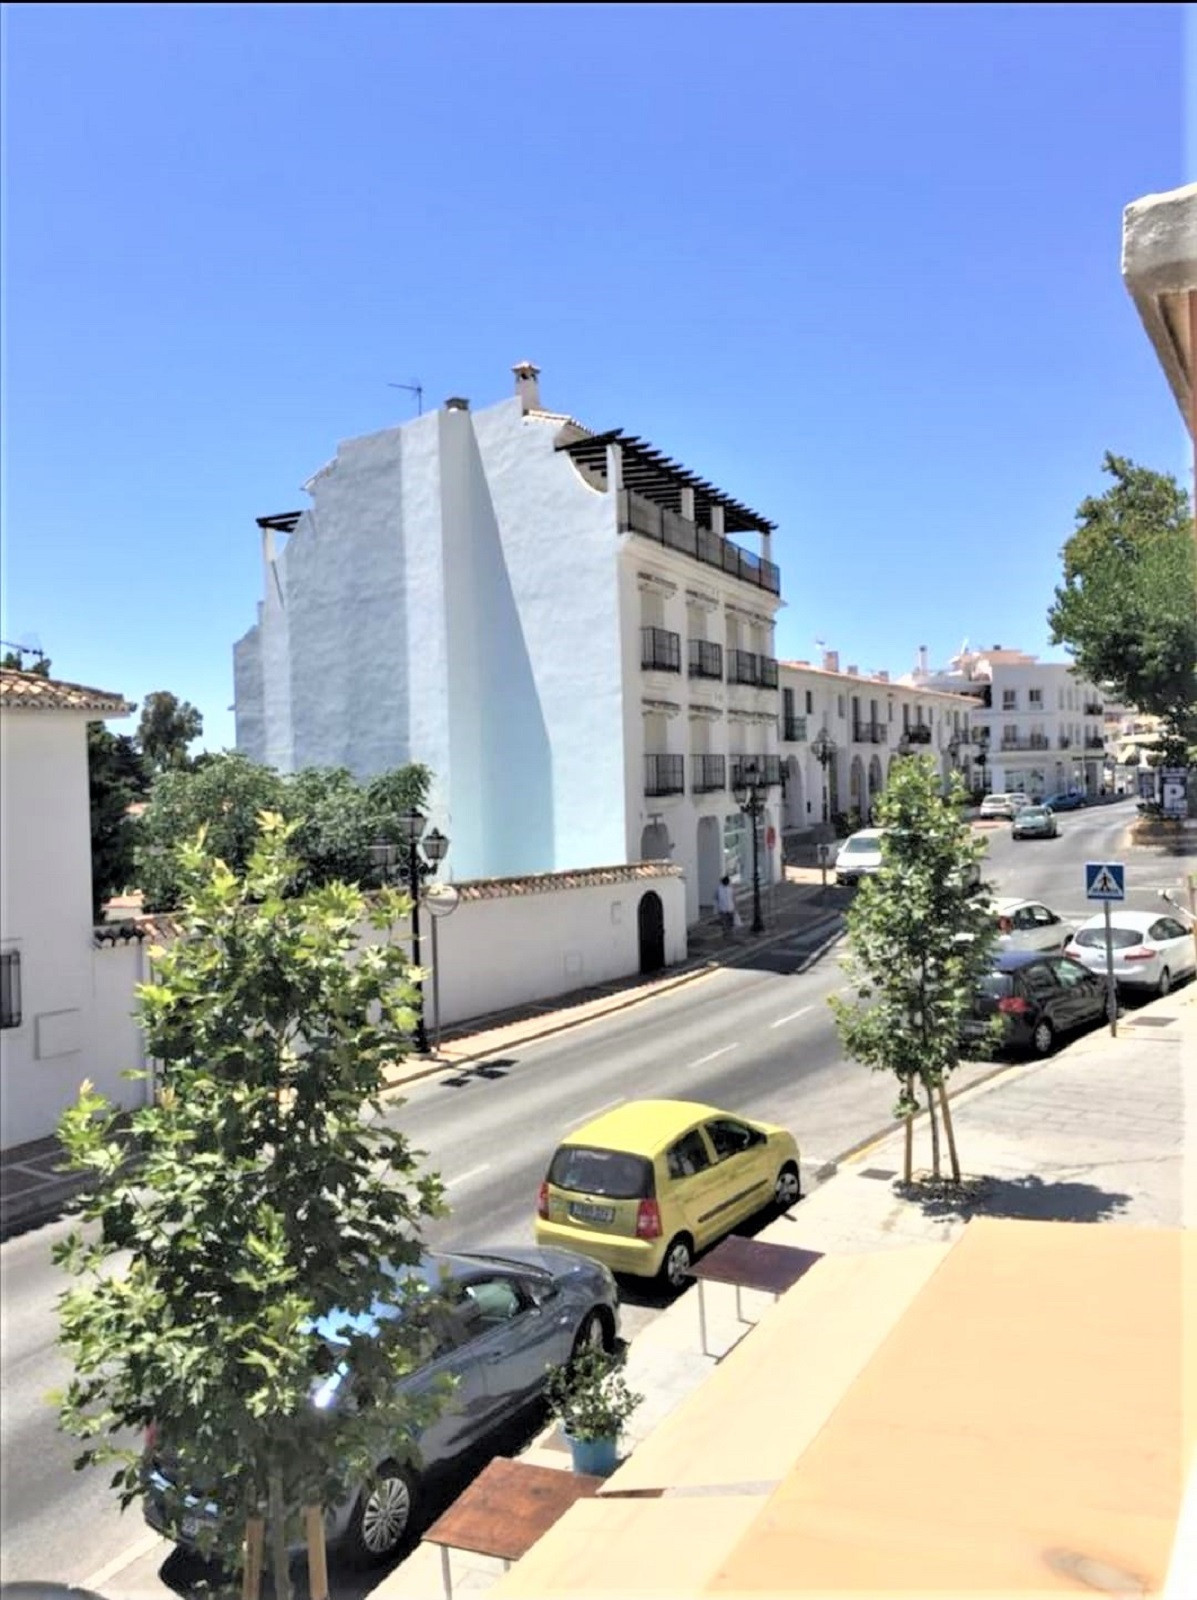 With an ideal location in the historic center of the popular Mijas town, within walking distance of ,Spain